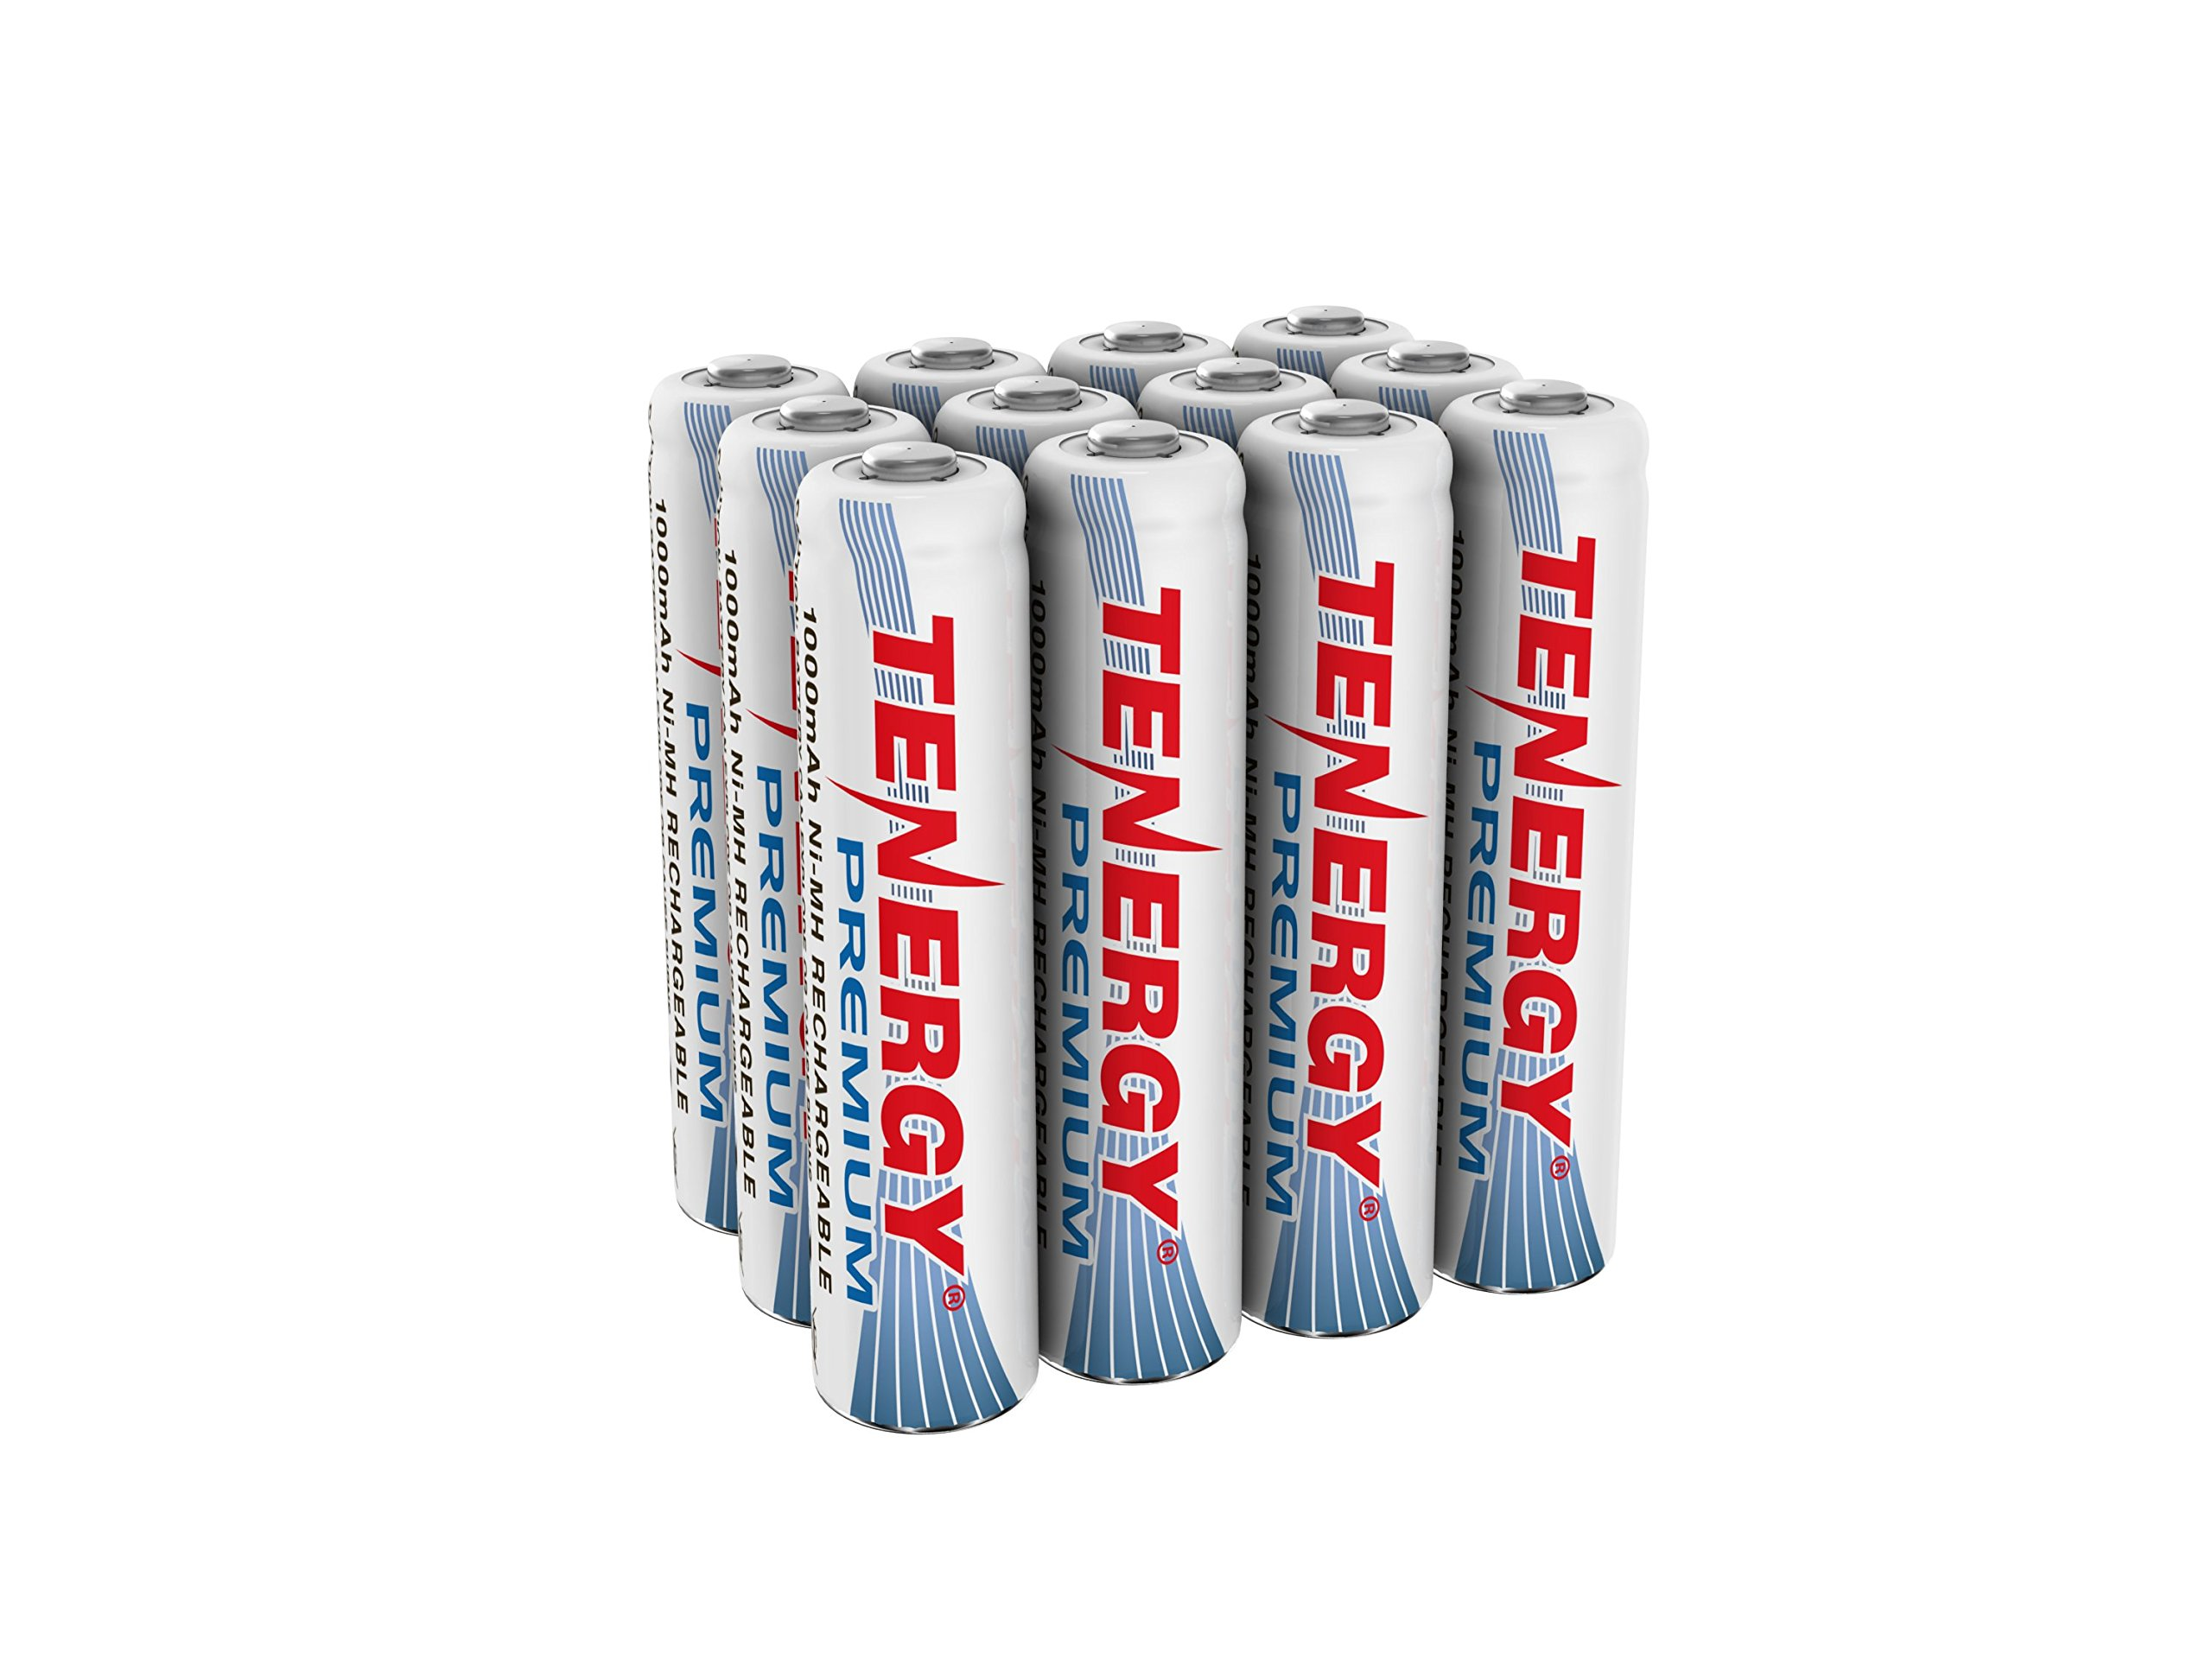 Tenergy Premium Rechargeable AAA Batteries, High Capacity 1000mAh NiMH AAA Batteries, AAA Cell Battery, 12-Pack by Tenergy